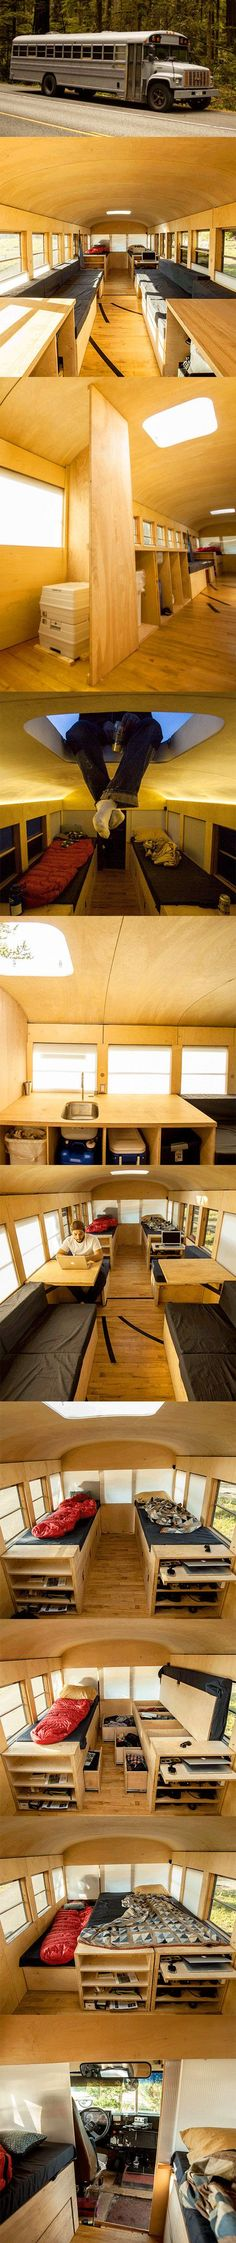 Architecture student Hank Butitta converted old school bus into a 225 square foot mobile home with small kitchen, living room, and bedroom.